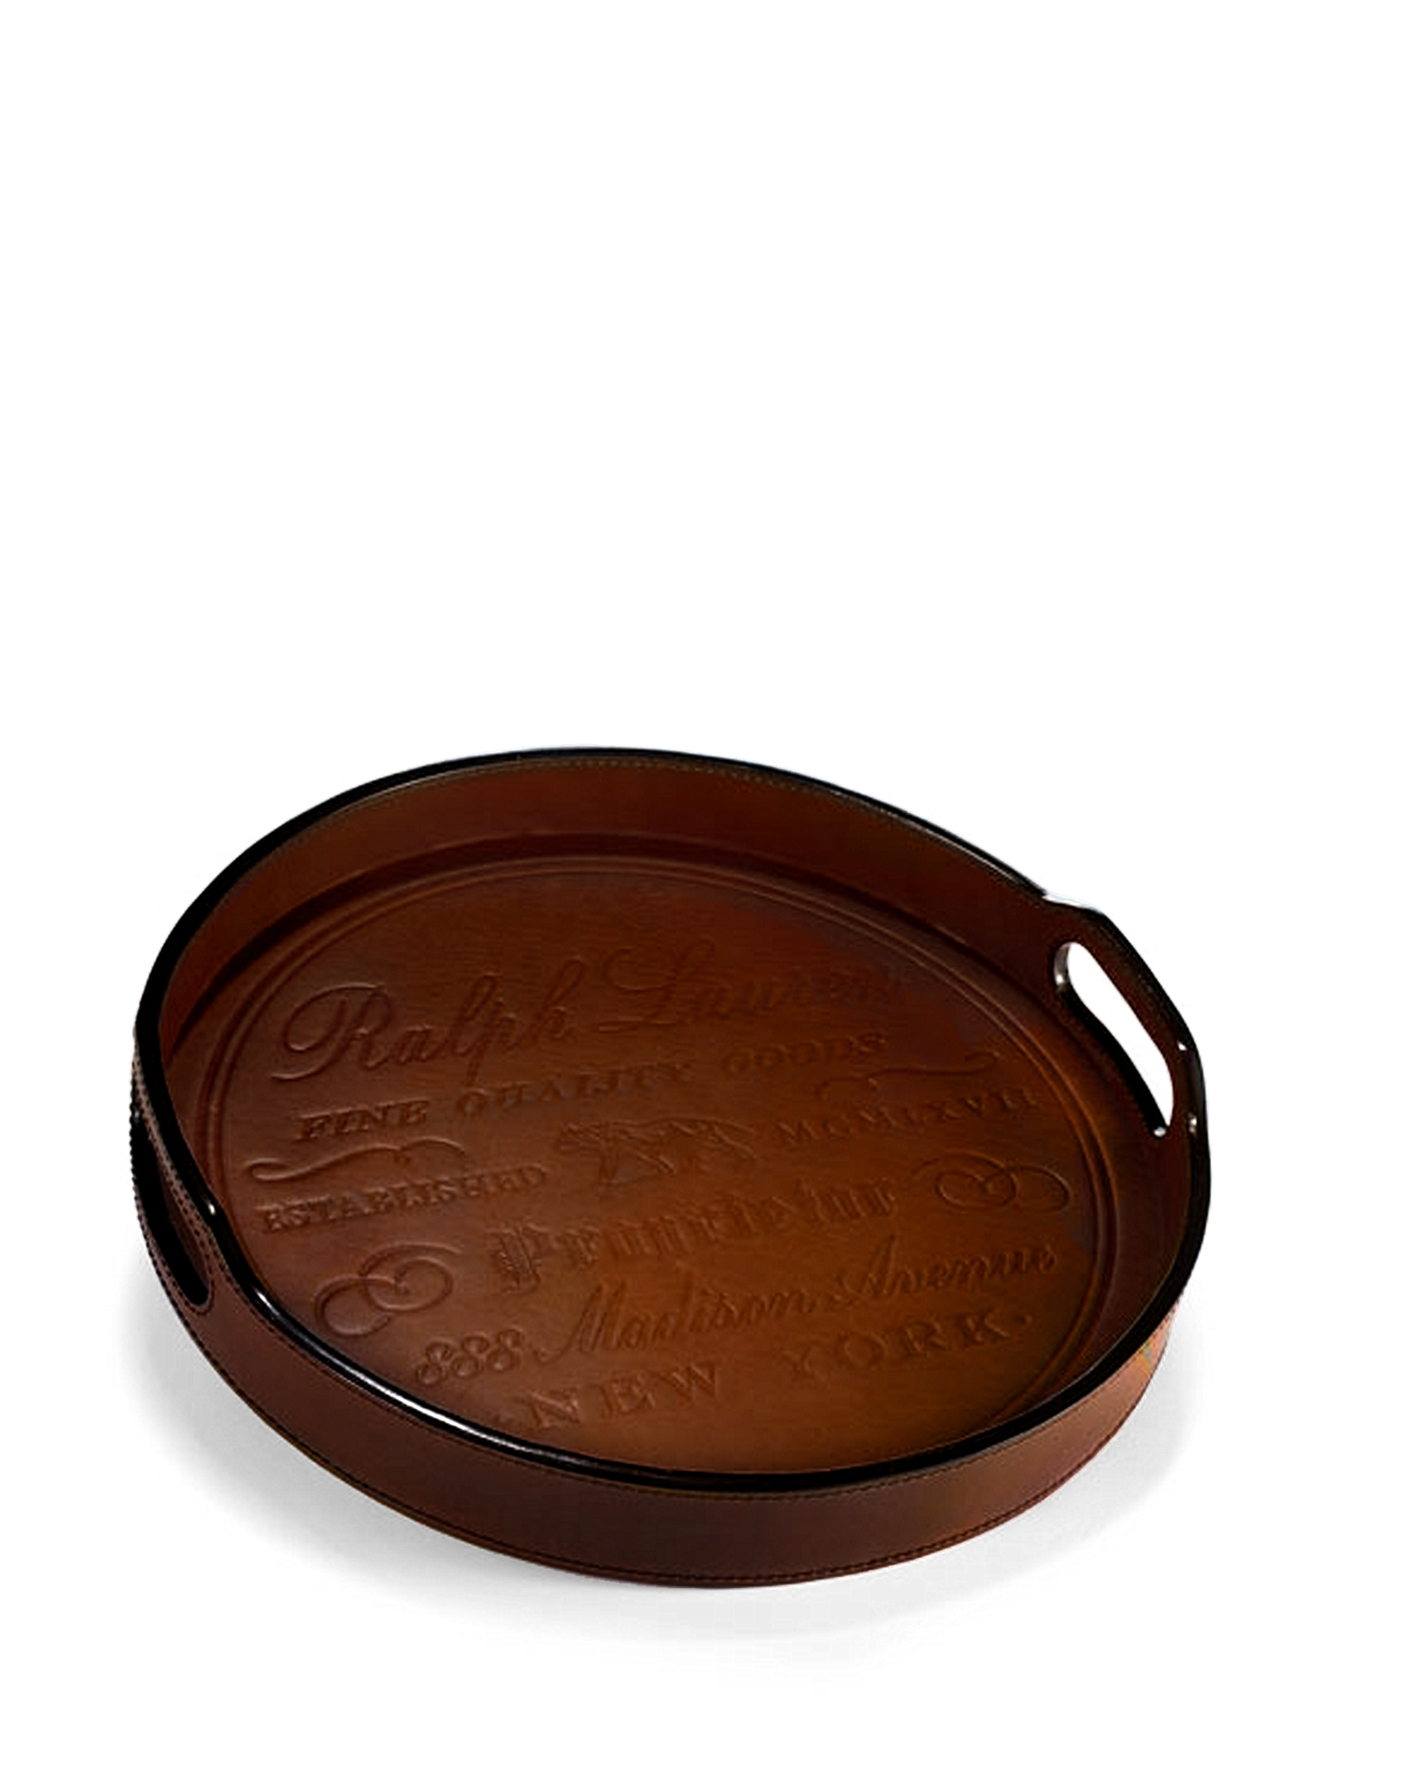 cantwell bar tray  serving bowls  trays serveware  ralphlaurencom - sales  promotions